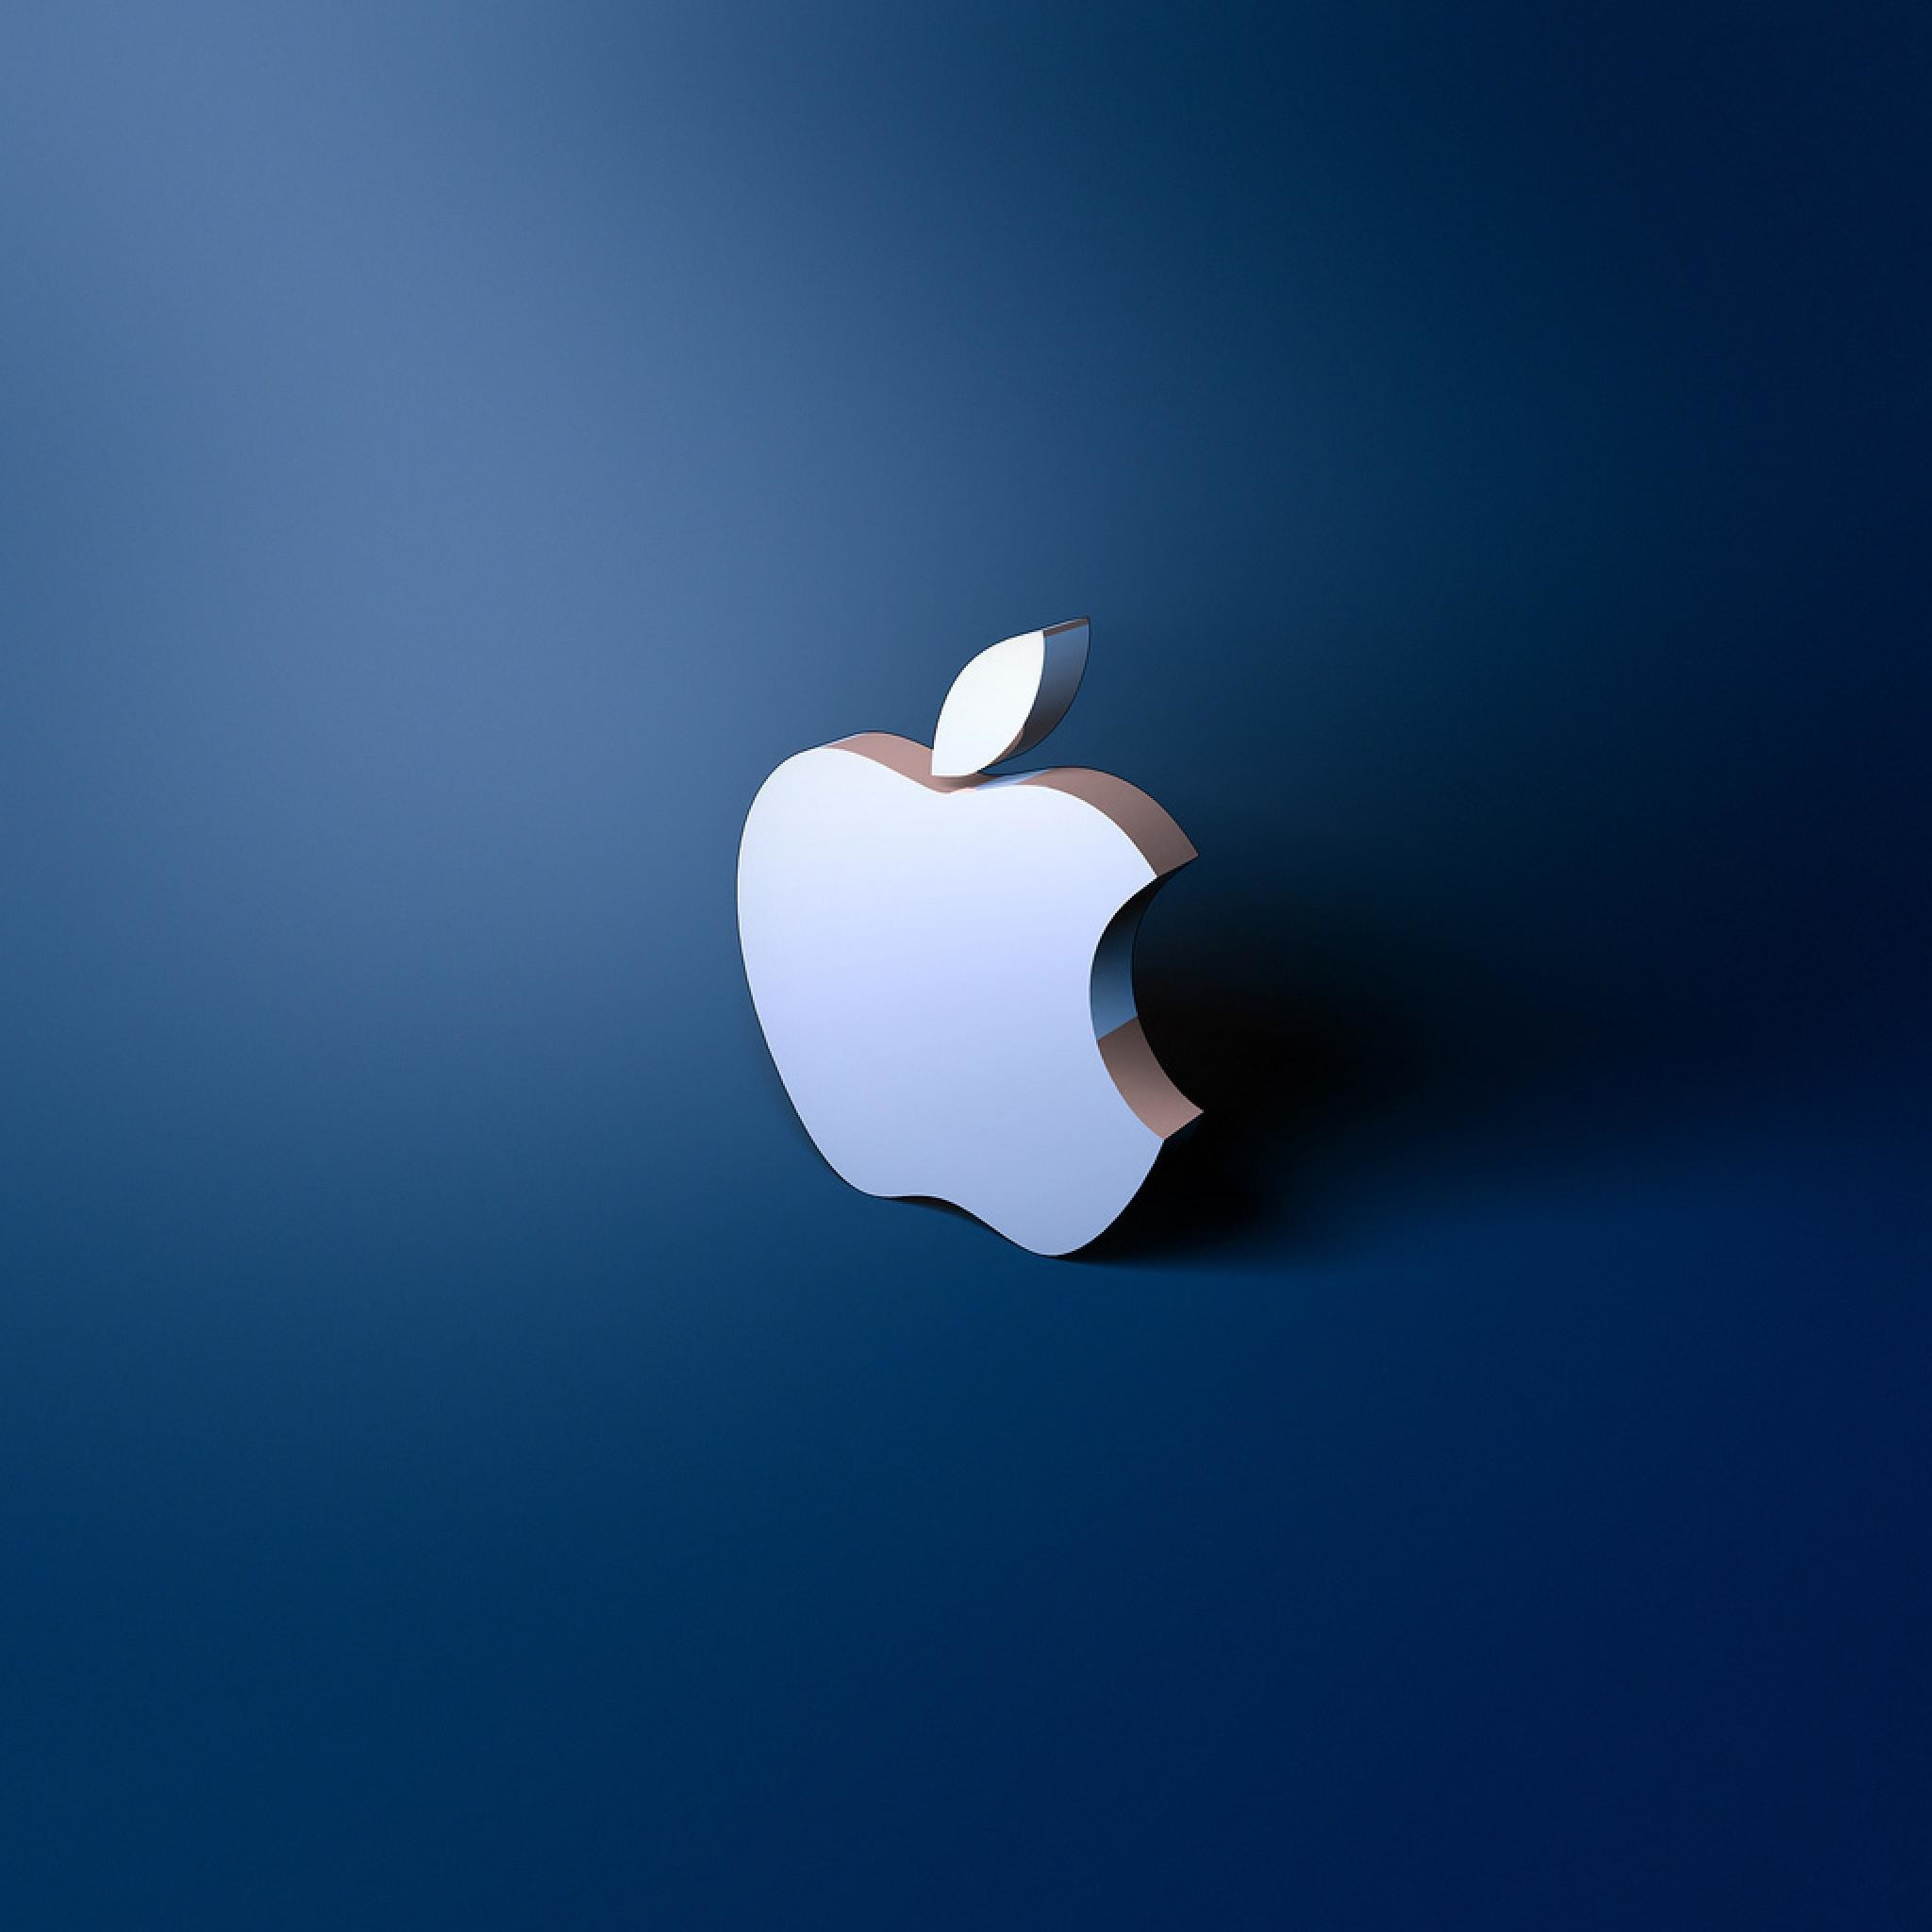 Apple 3d Wallpapers 71 Background Pictures